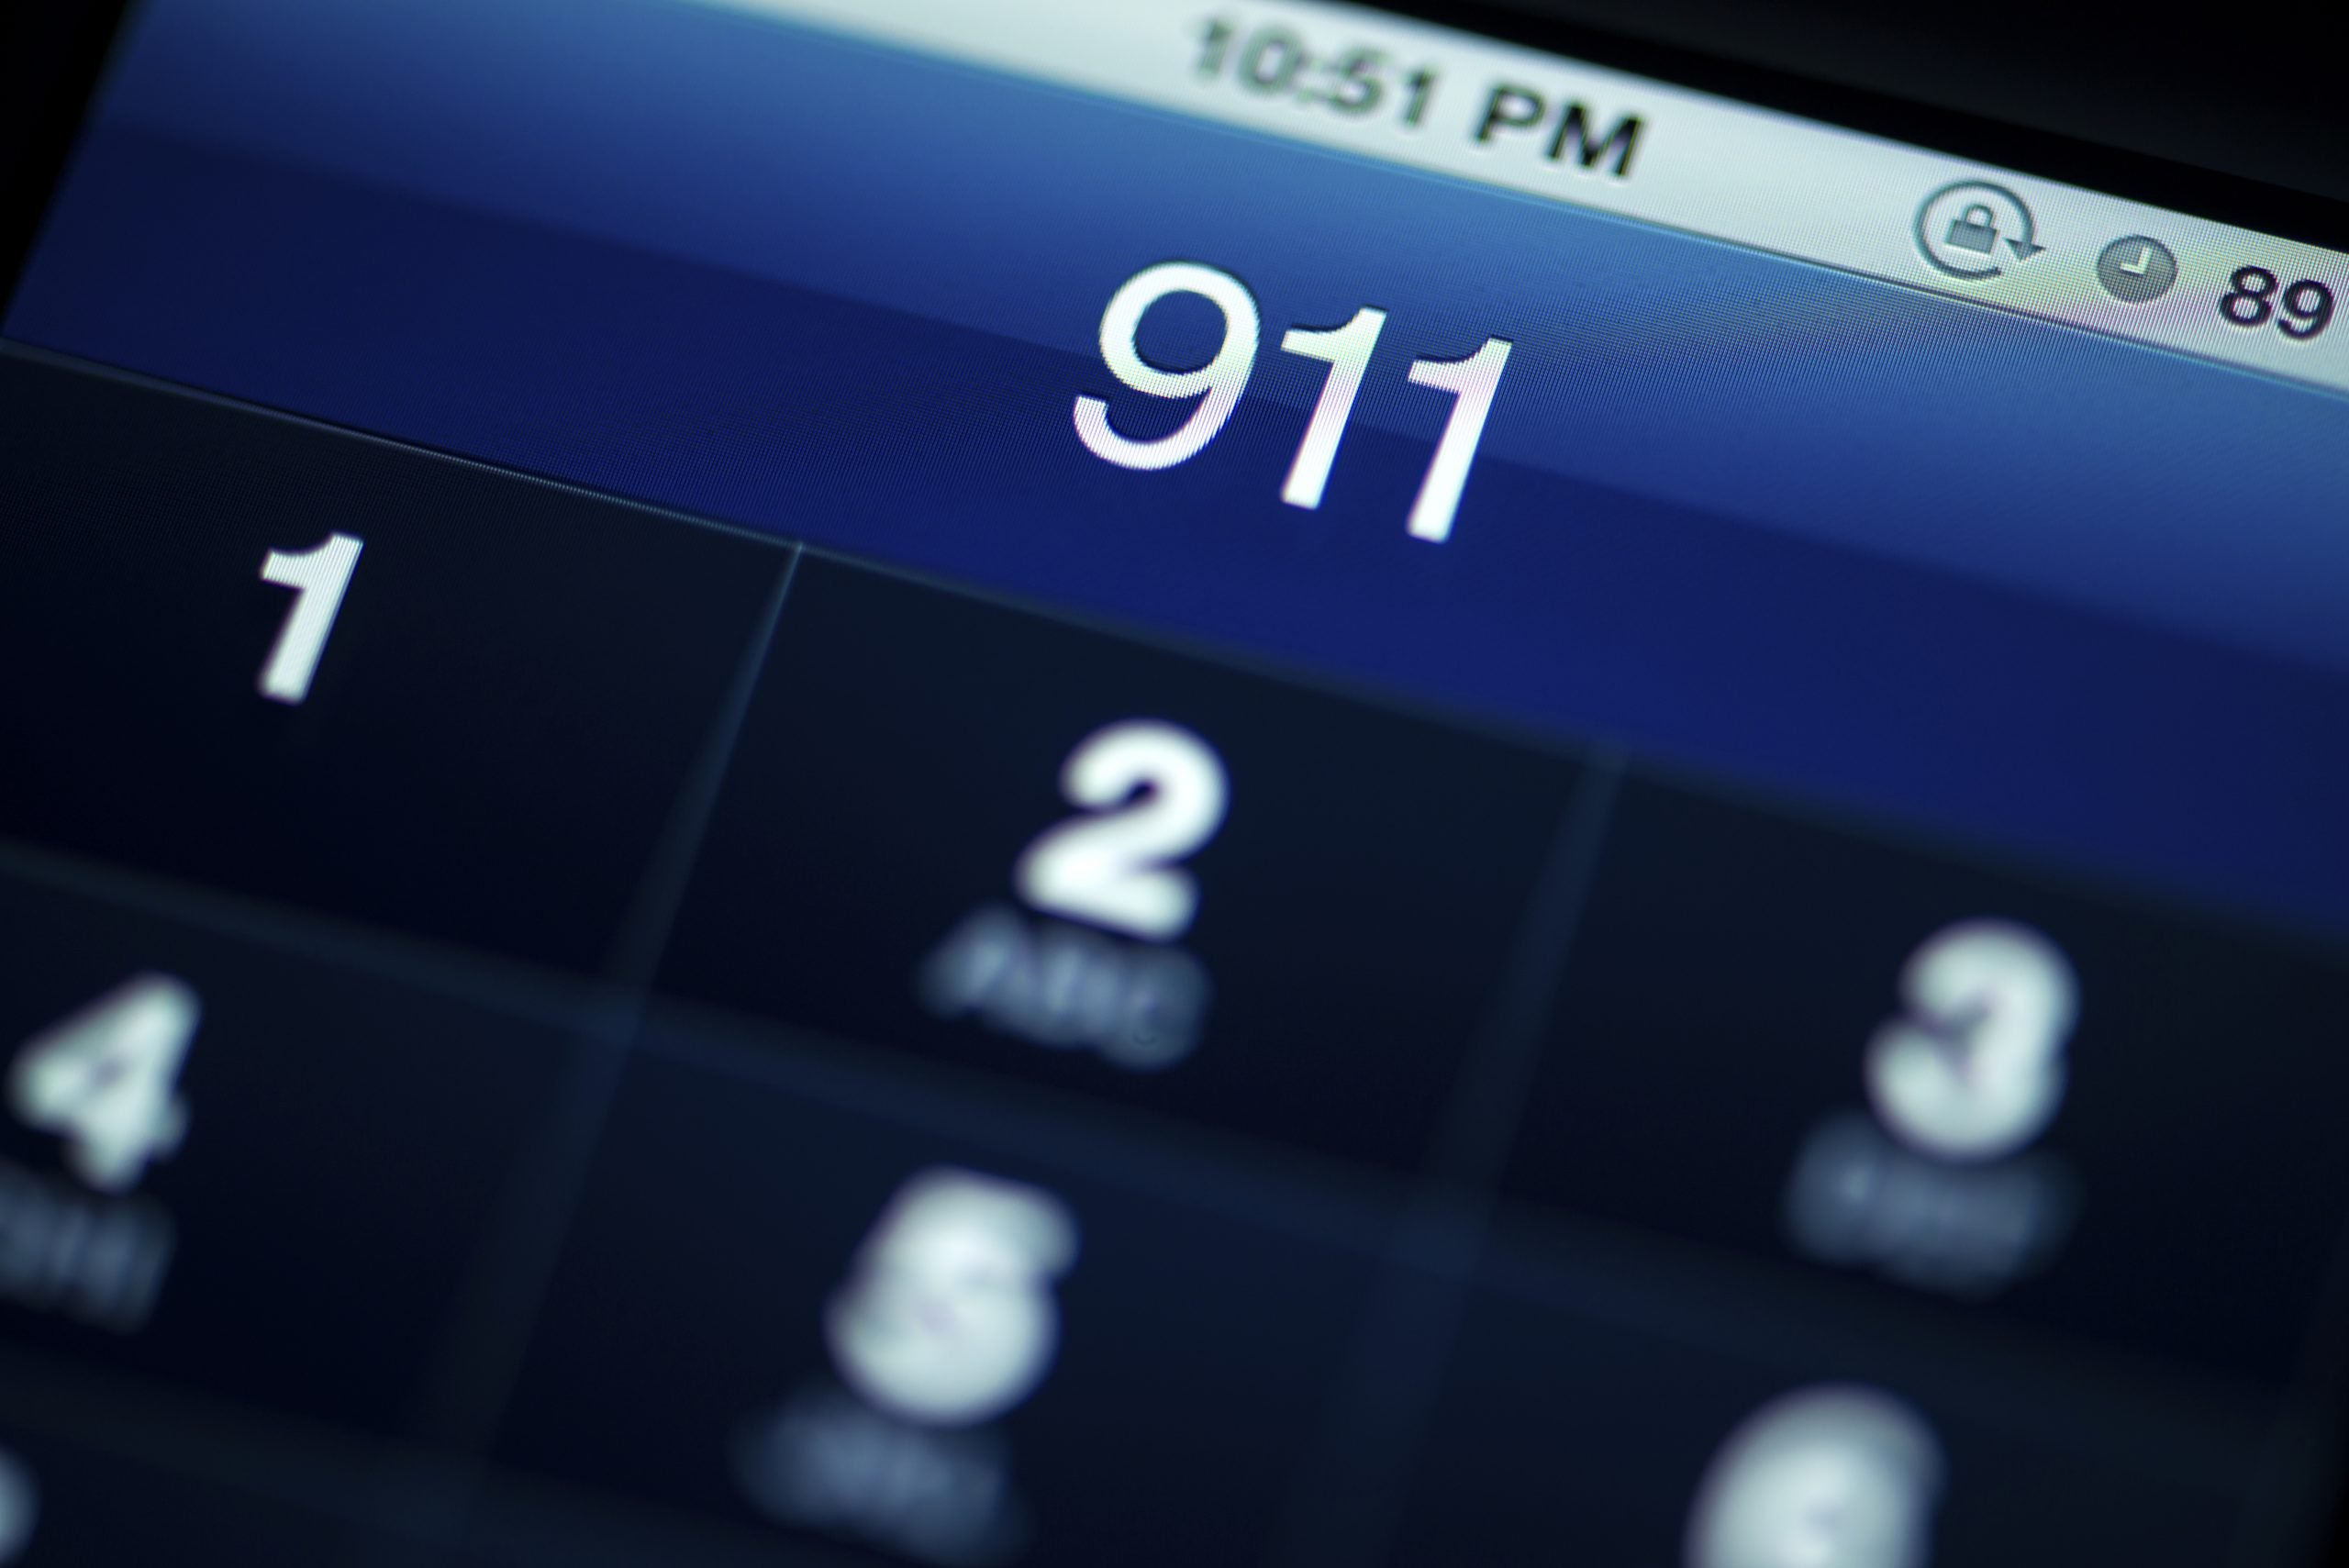 The Ins and Outs of a 911 Call